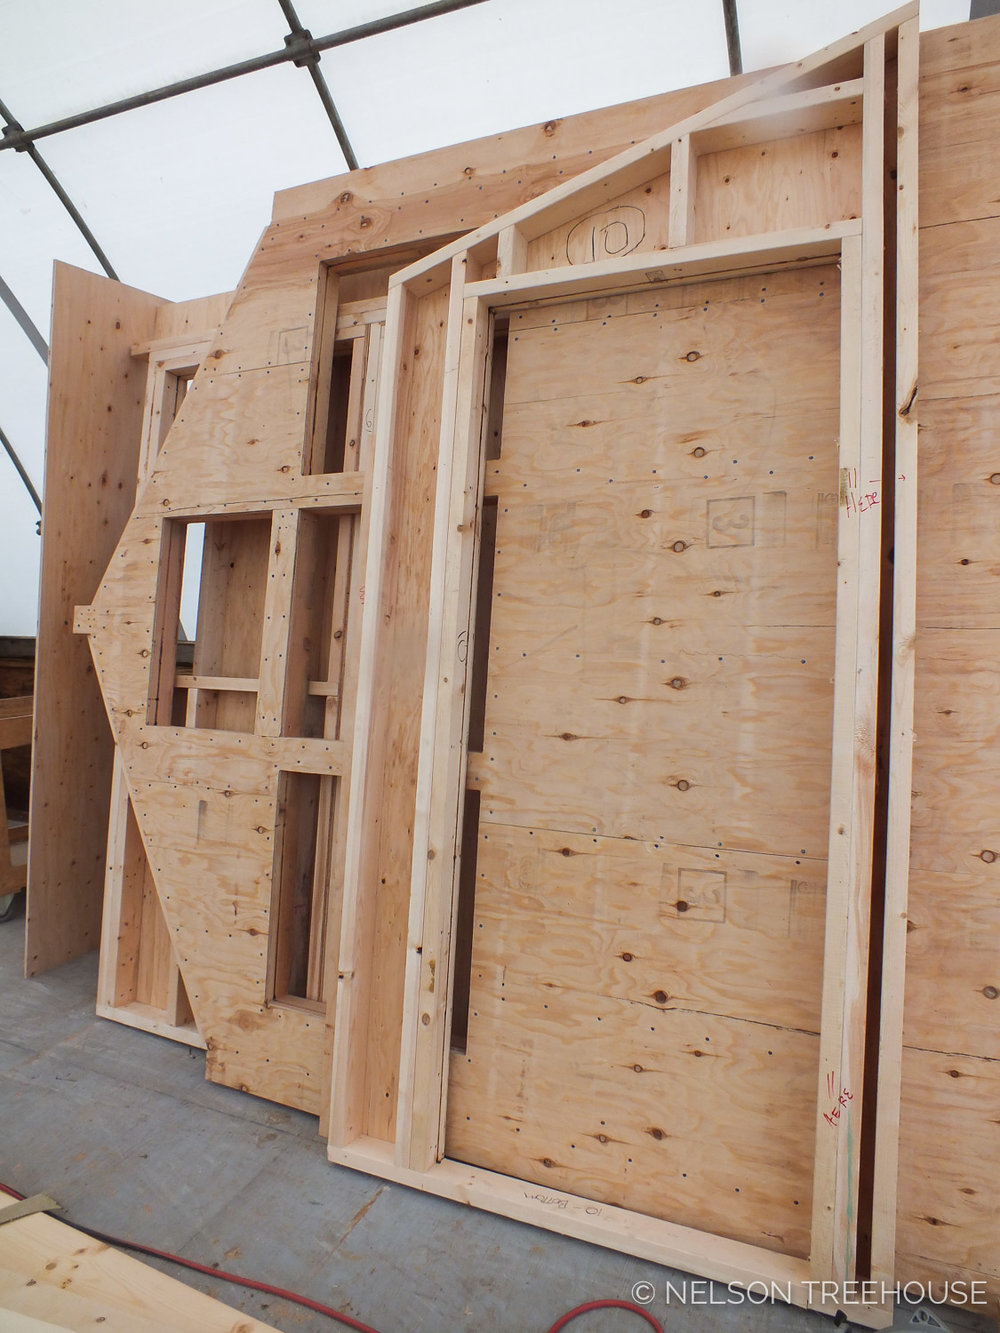 NELSON TREEHOUSE PREFABRICATED WALLS